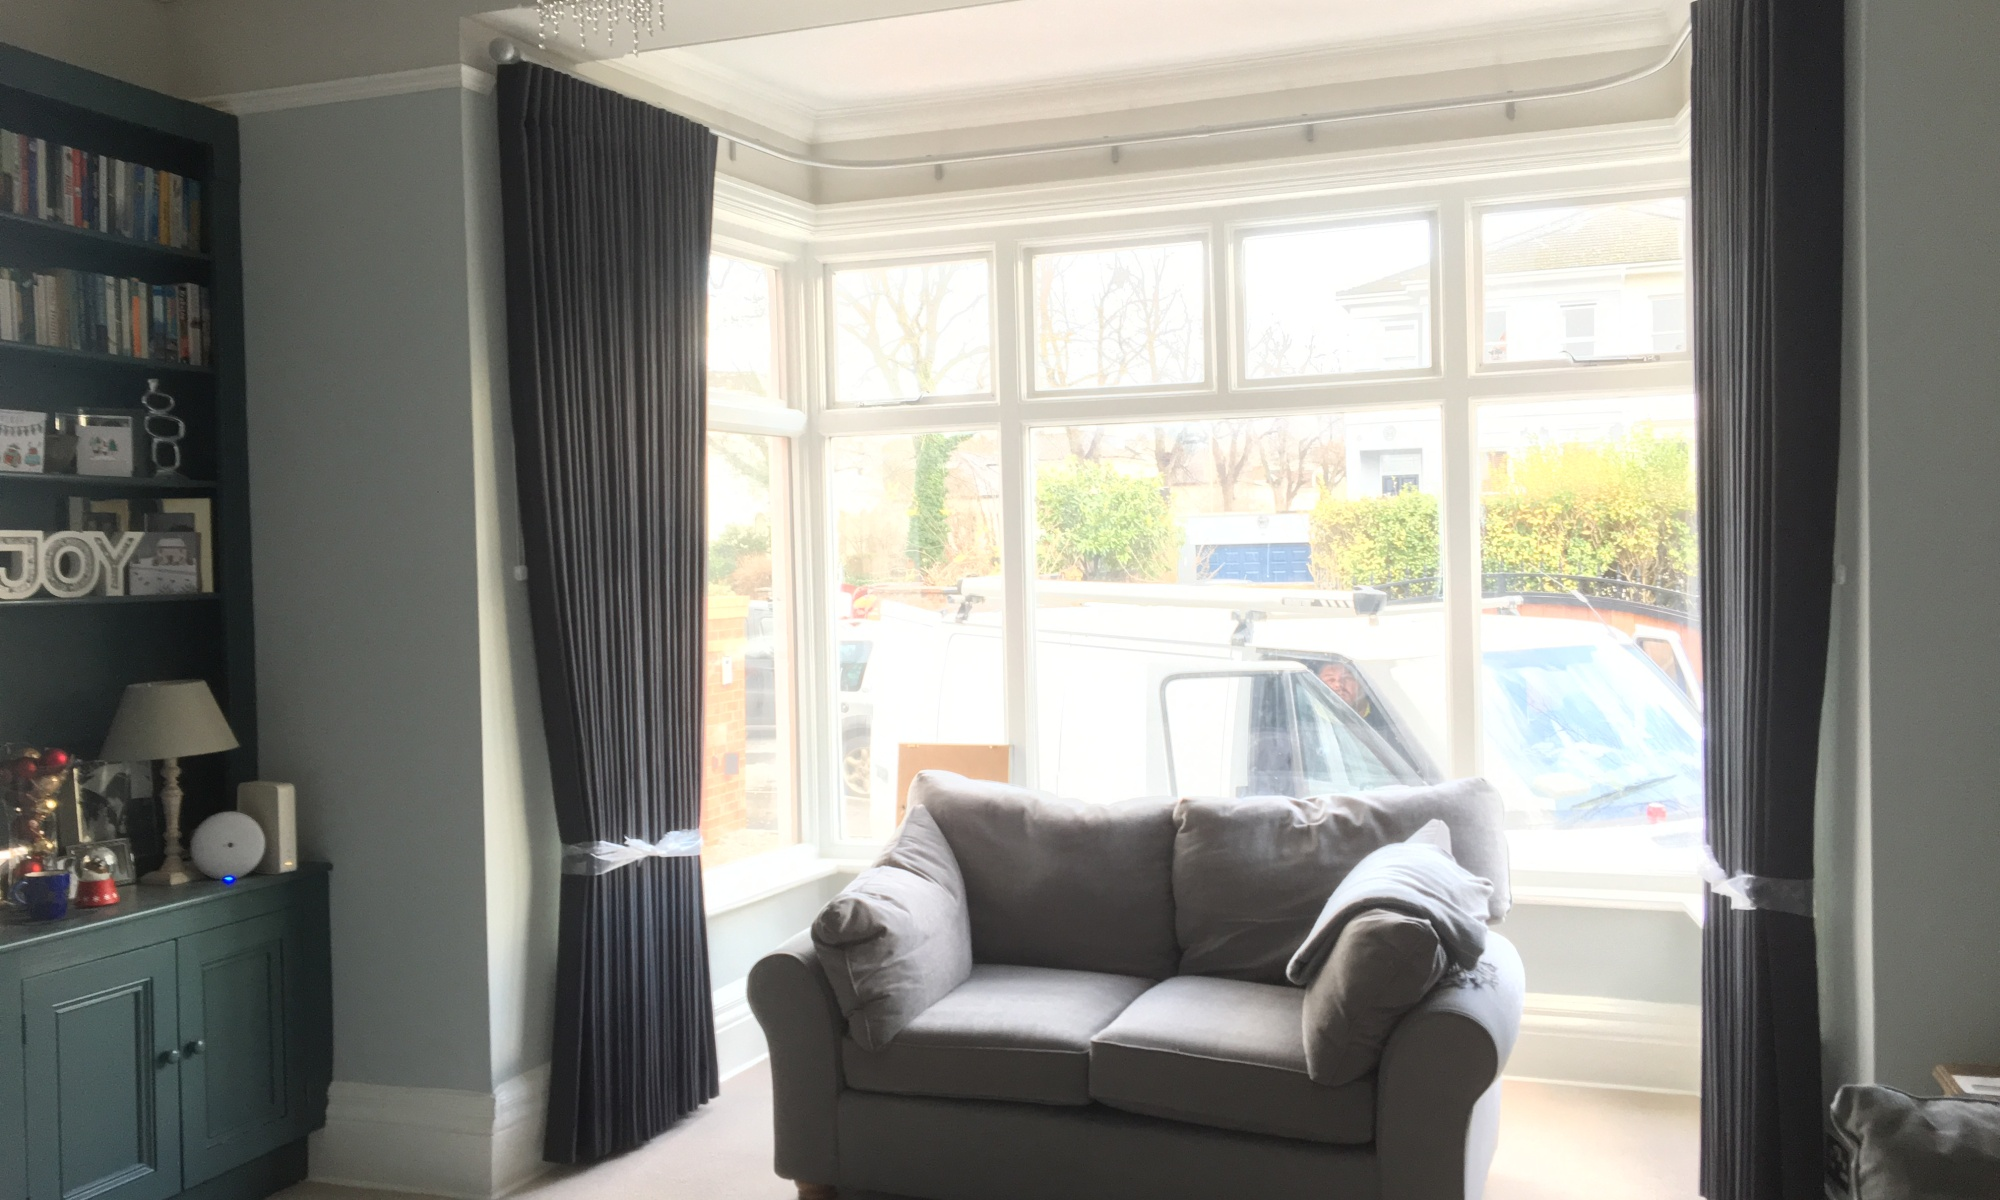 After - Light pours into the room using a curved Silent Gliss Metropole bay pole, allowing for just two curtain panels - Cheltenham Town House